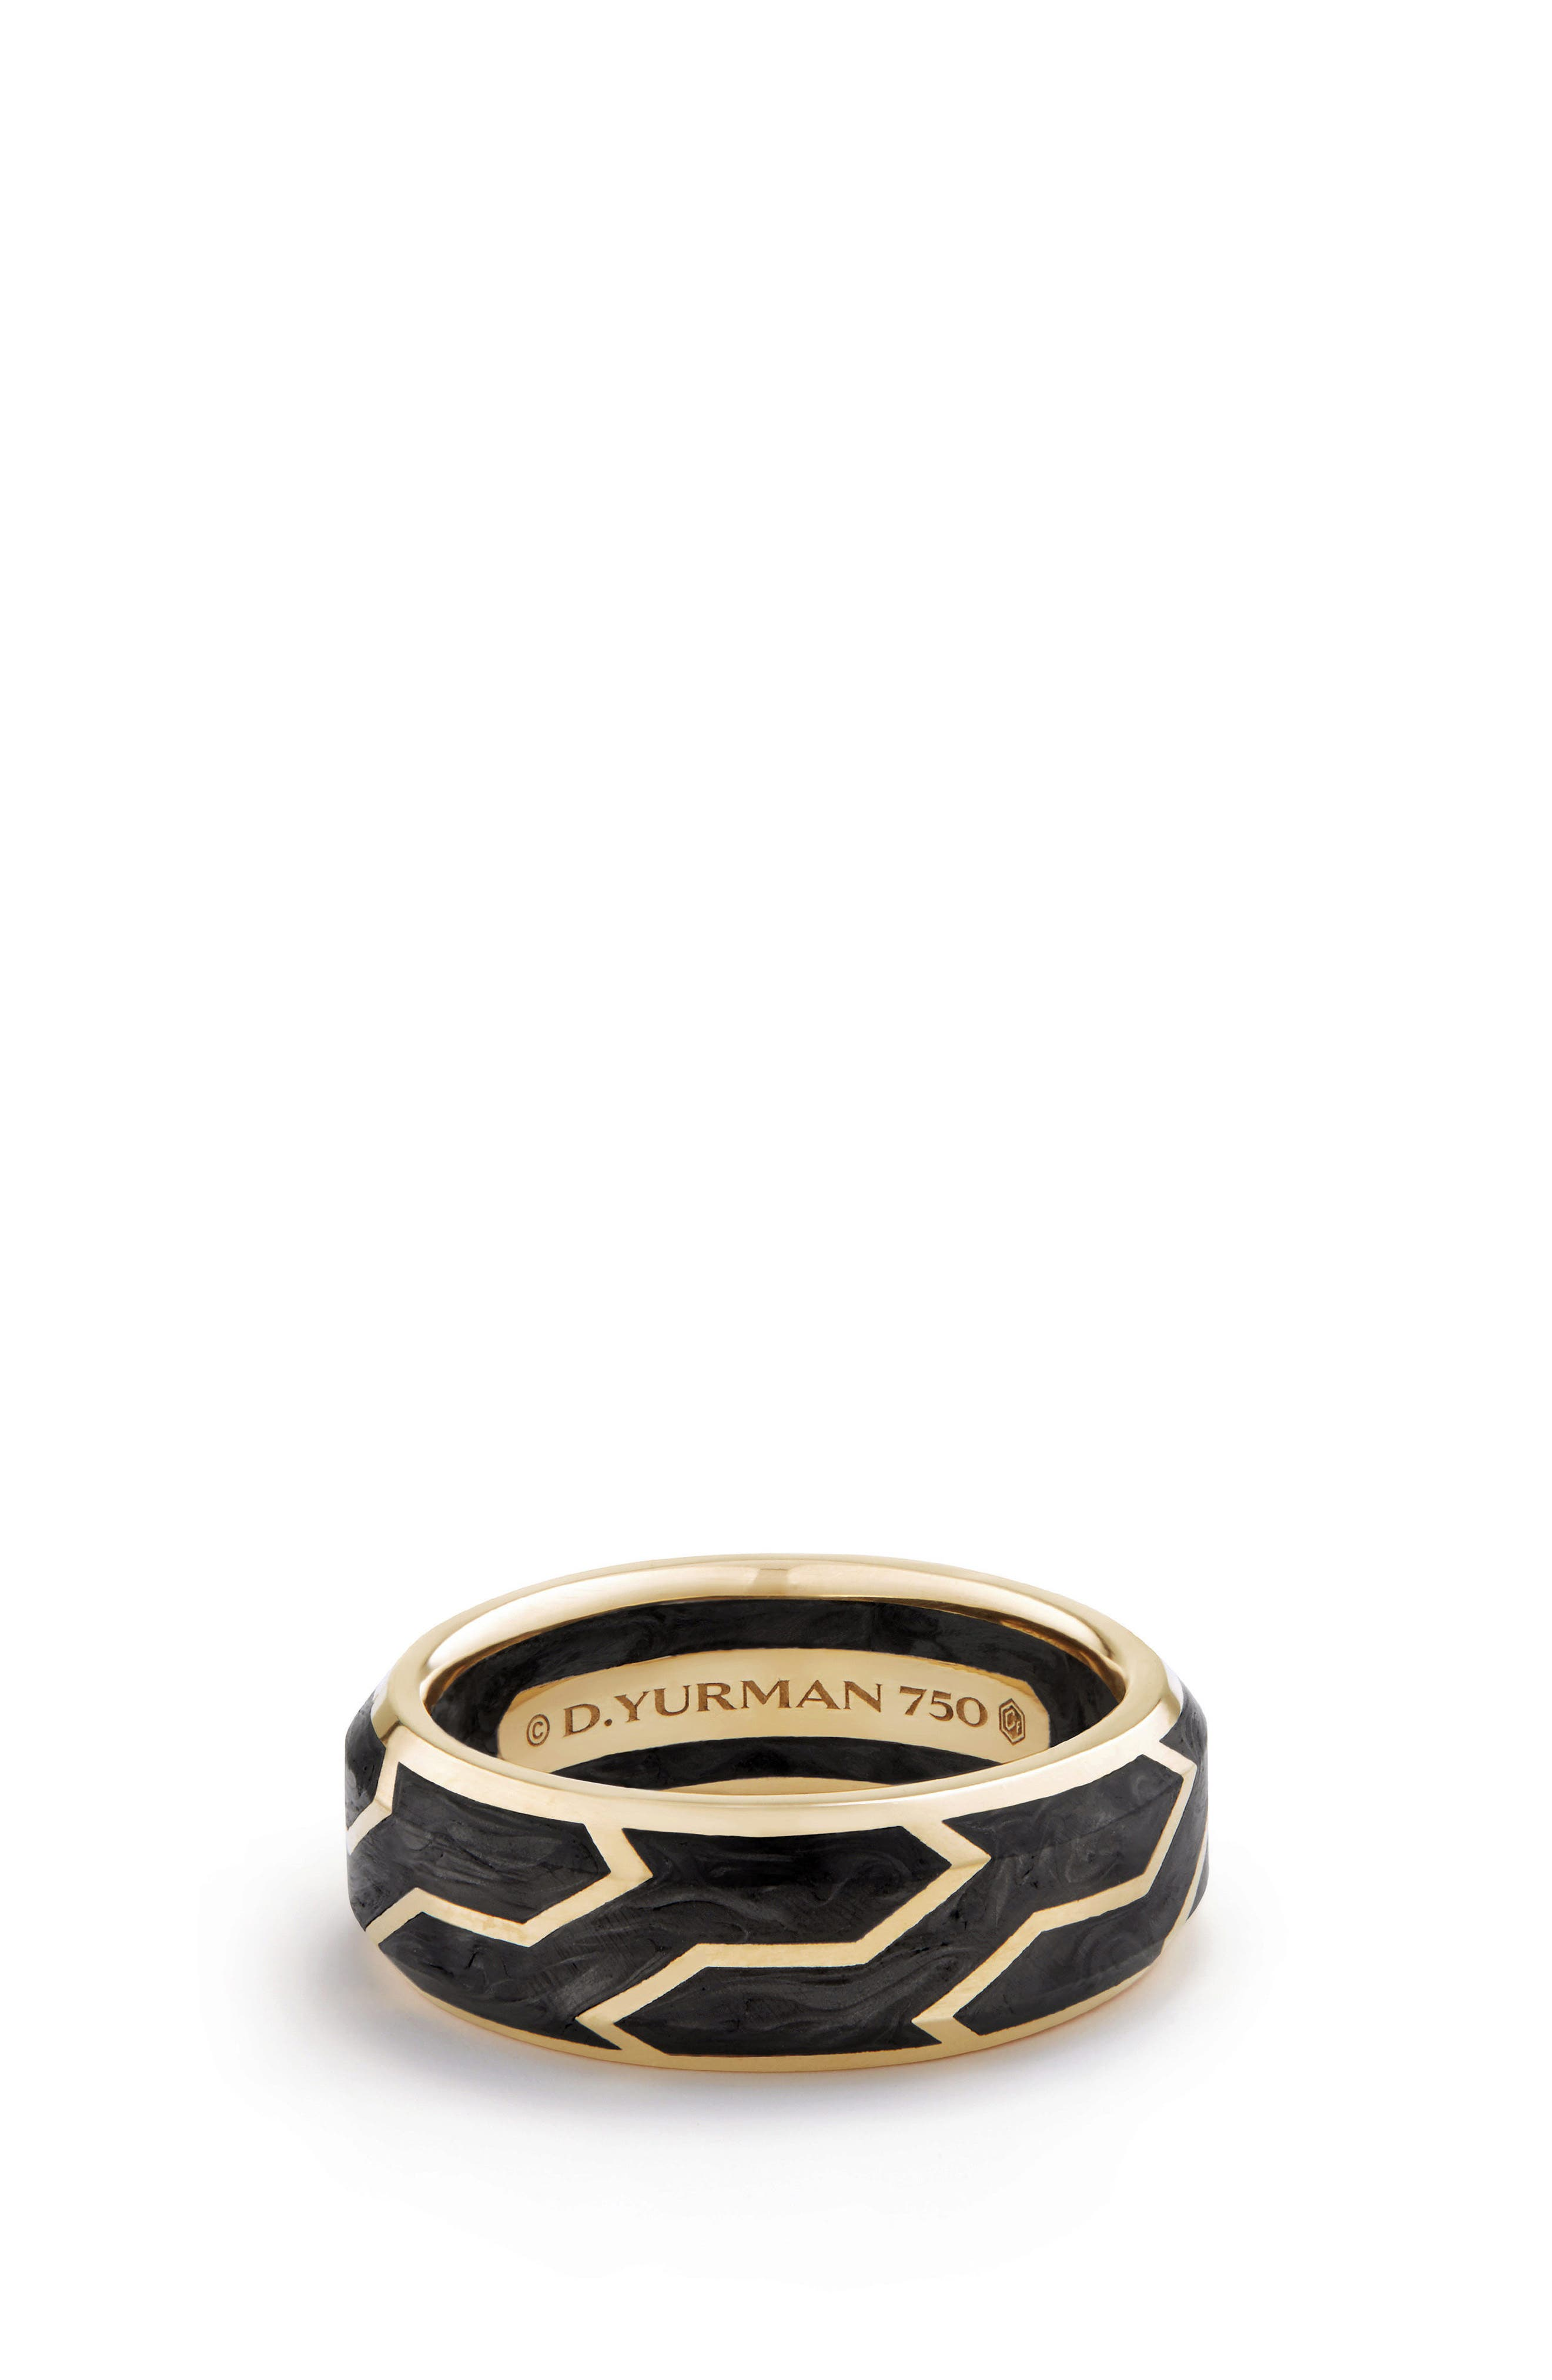 Forged Carbon Band Ring in 18K Gold, 8.5mm,                         Main,                         color, Forged Carbon